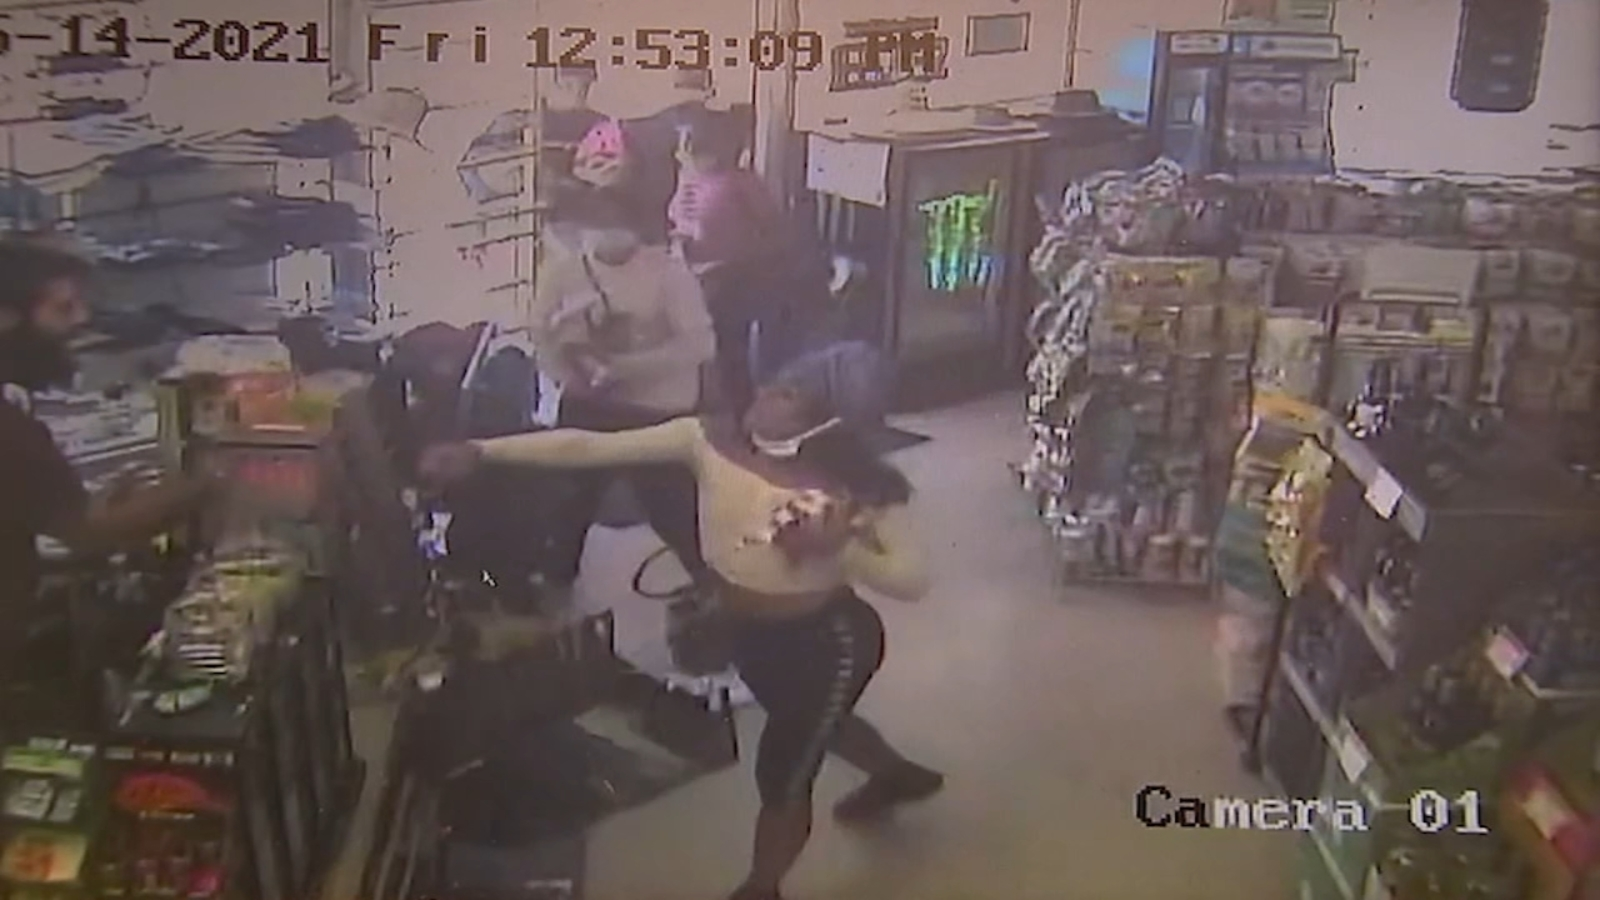 Surveillance video shows theft by group of teens at Woodland Hills liquor store turn violent